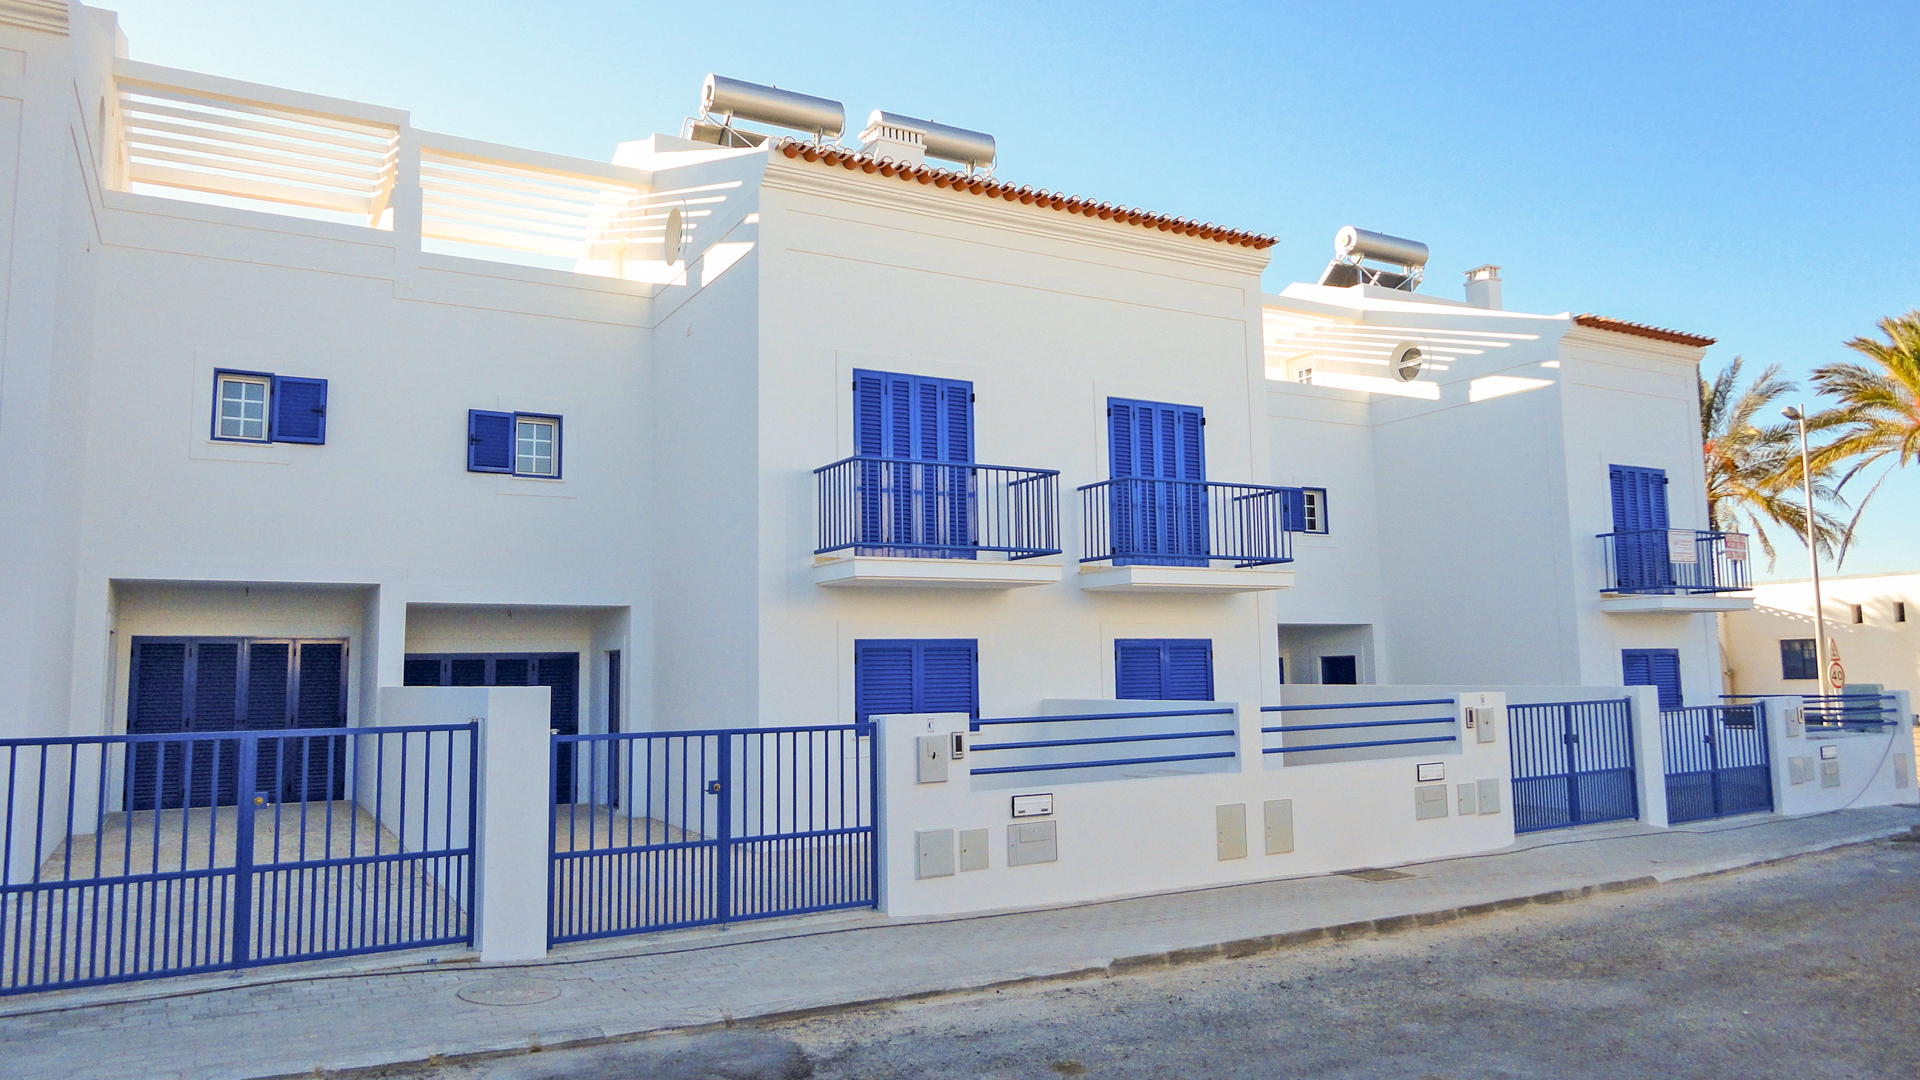 Front Line Sea View Brand New Linked Houses in a Typical Village, Manta Rota | ST1740 New villas on the front line of Manta Rota beach, with several balconies and terraces and spacious rooms. Great for holidays or even permanent living.